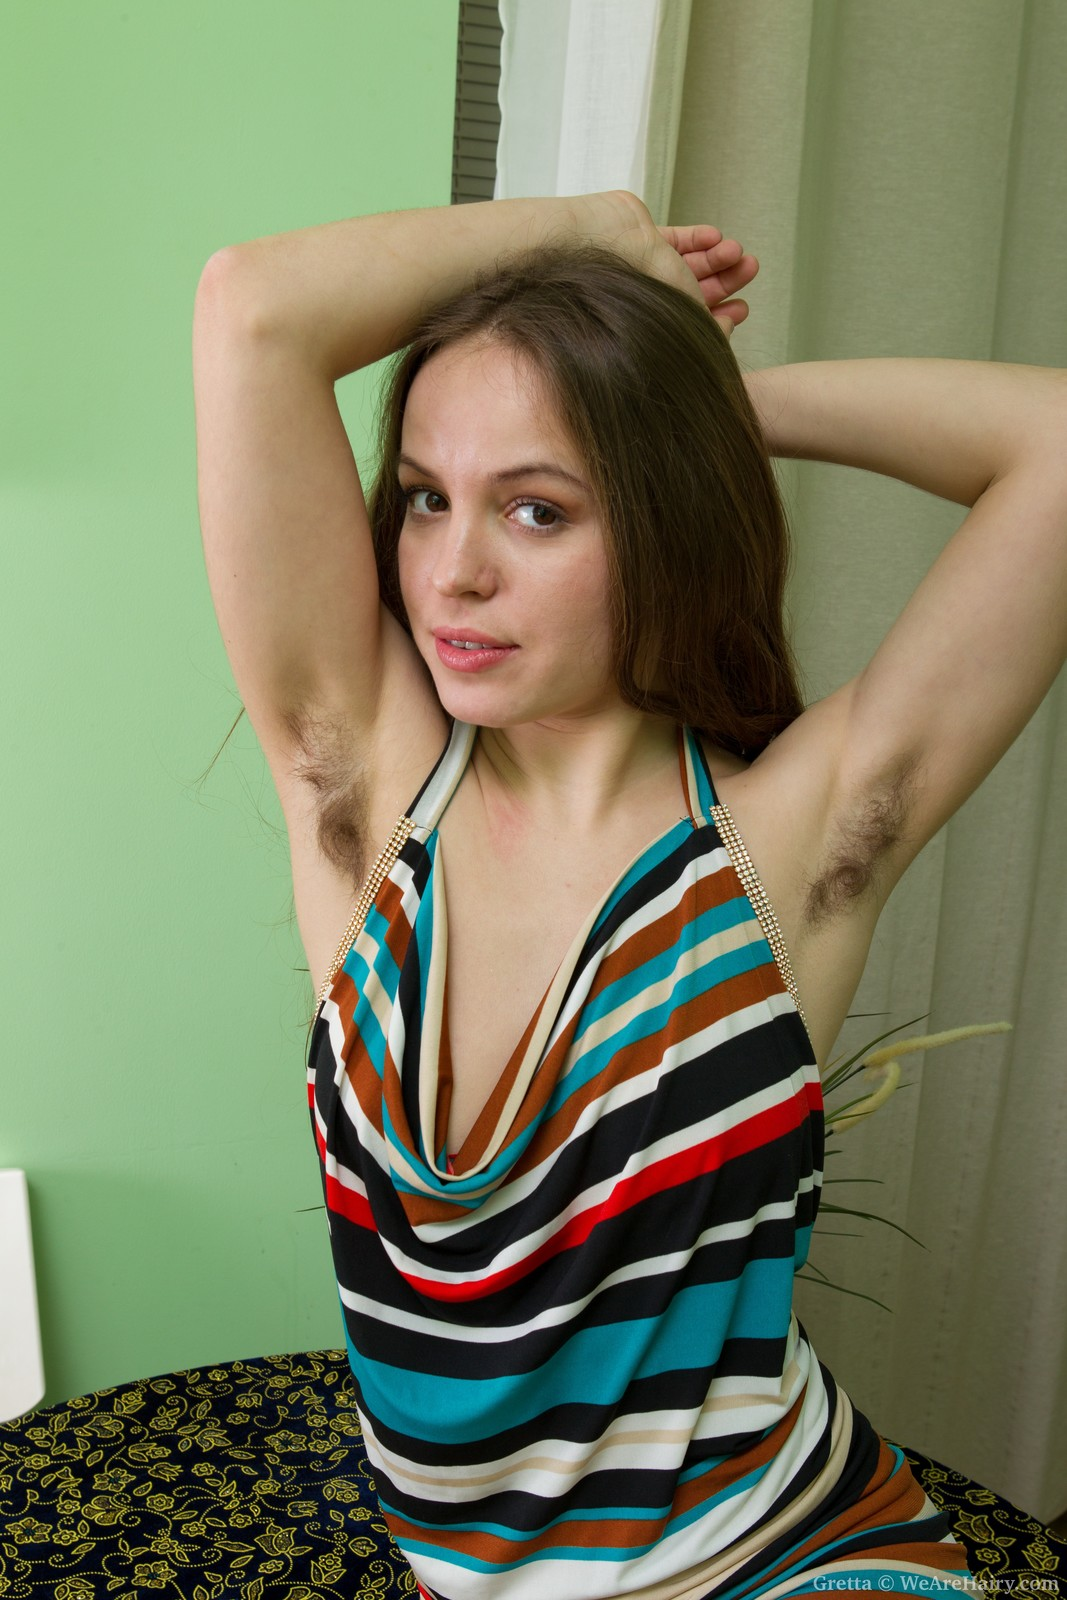 Grettas hirsute body and the striped dress - Shes Hairy